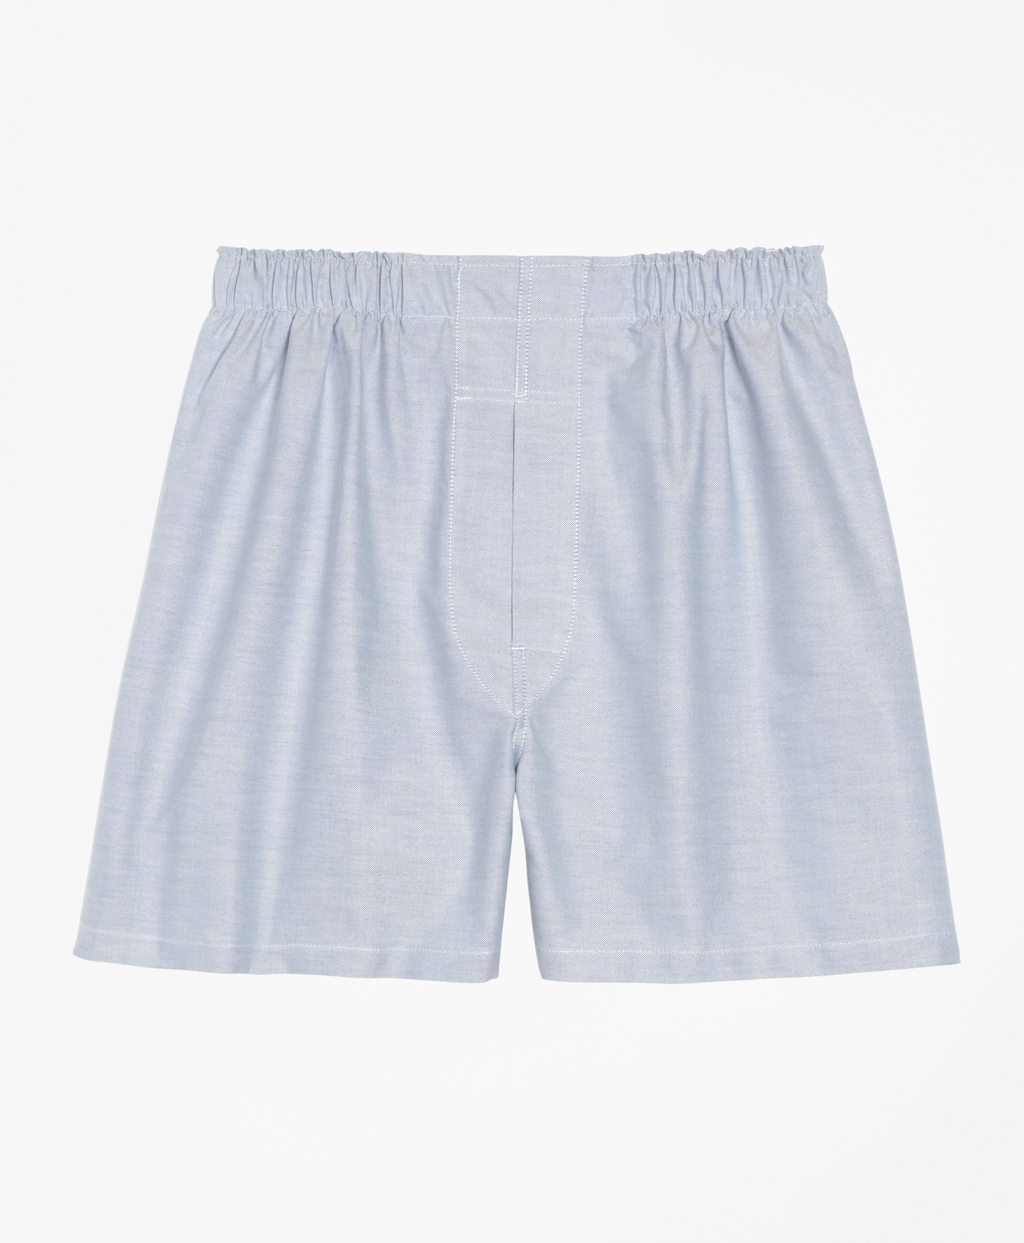 Traditional Fit Oxford Boxers. remembertooltipbutton